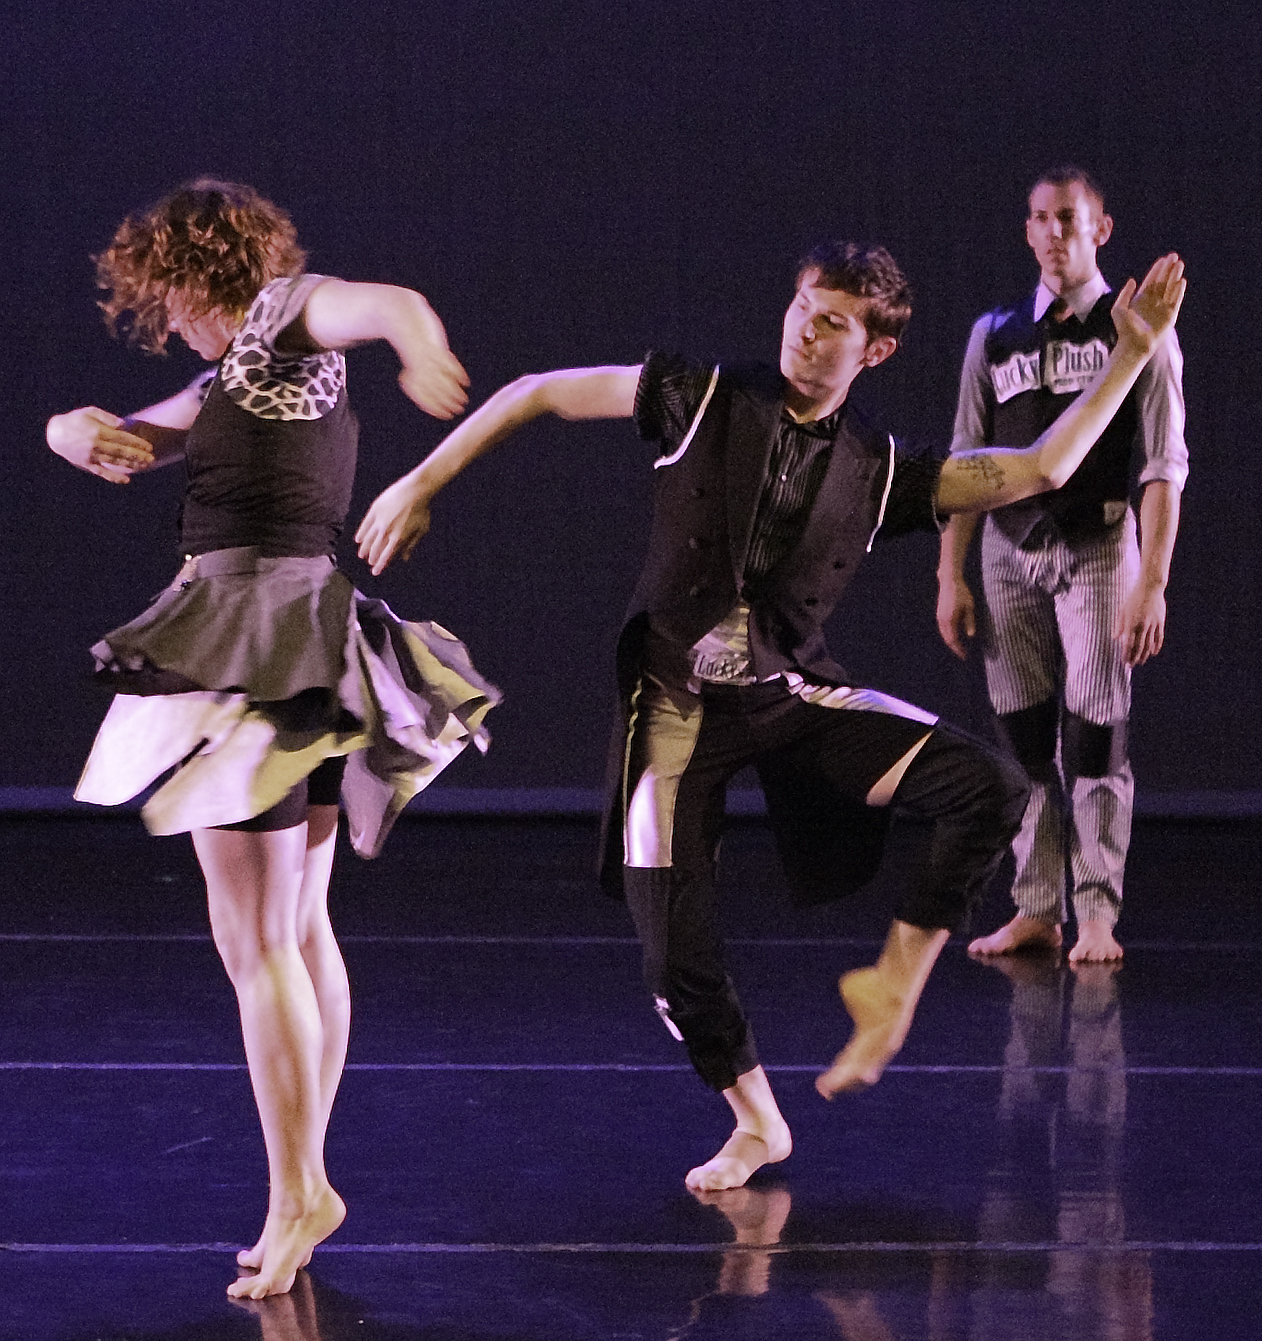 Meghann Wilkinson, Hogan McLaughlin and Jeremy Blair in Punk Yankees. Photo by William Frederking.